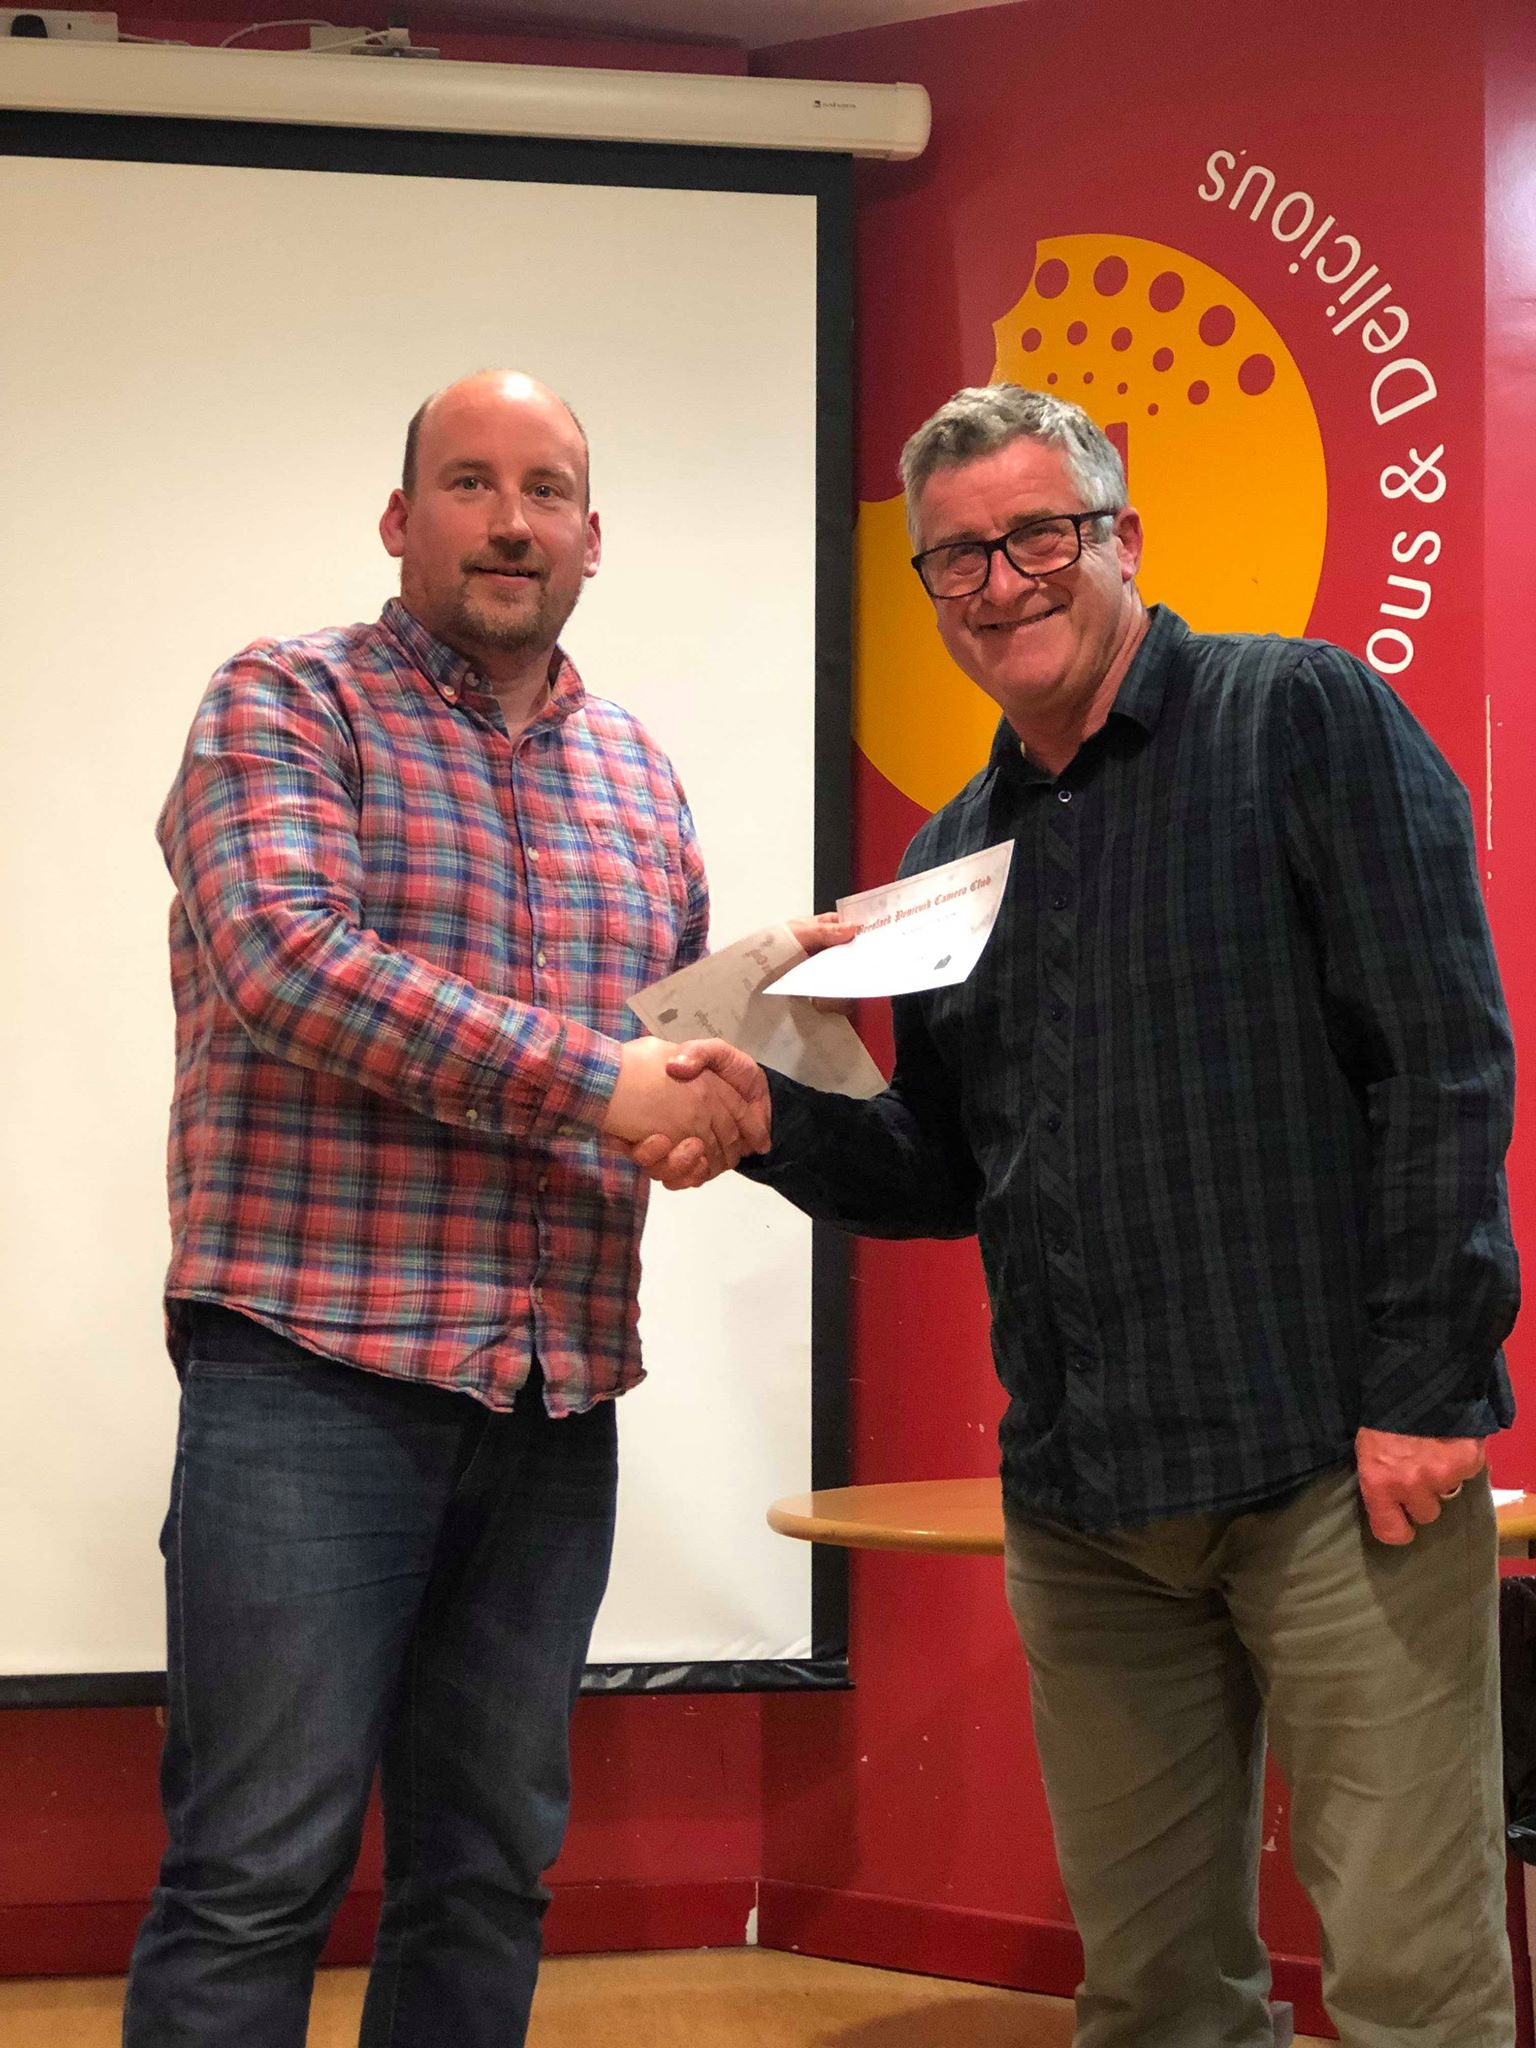 3rd PLACE - Dougie Allan (Joint)